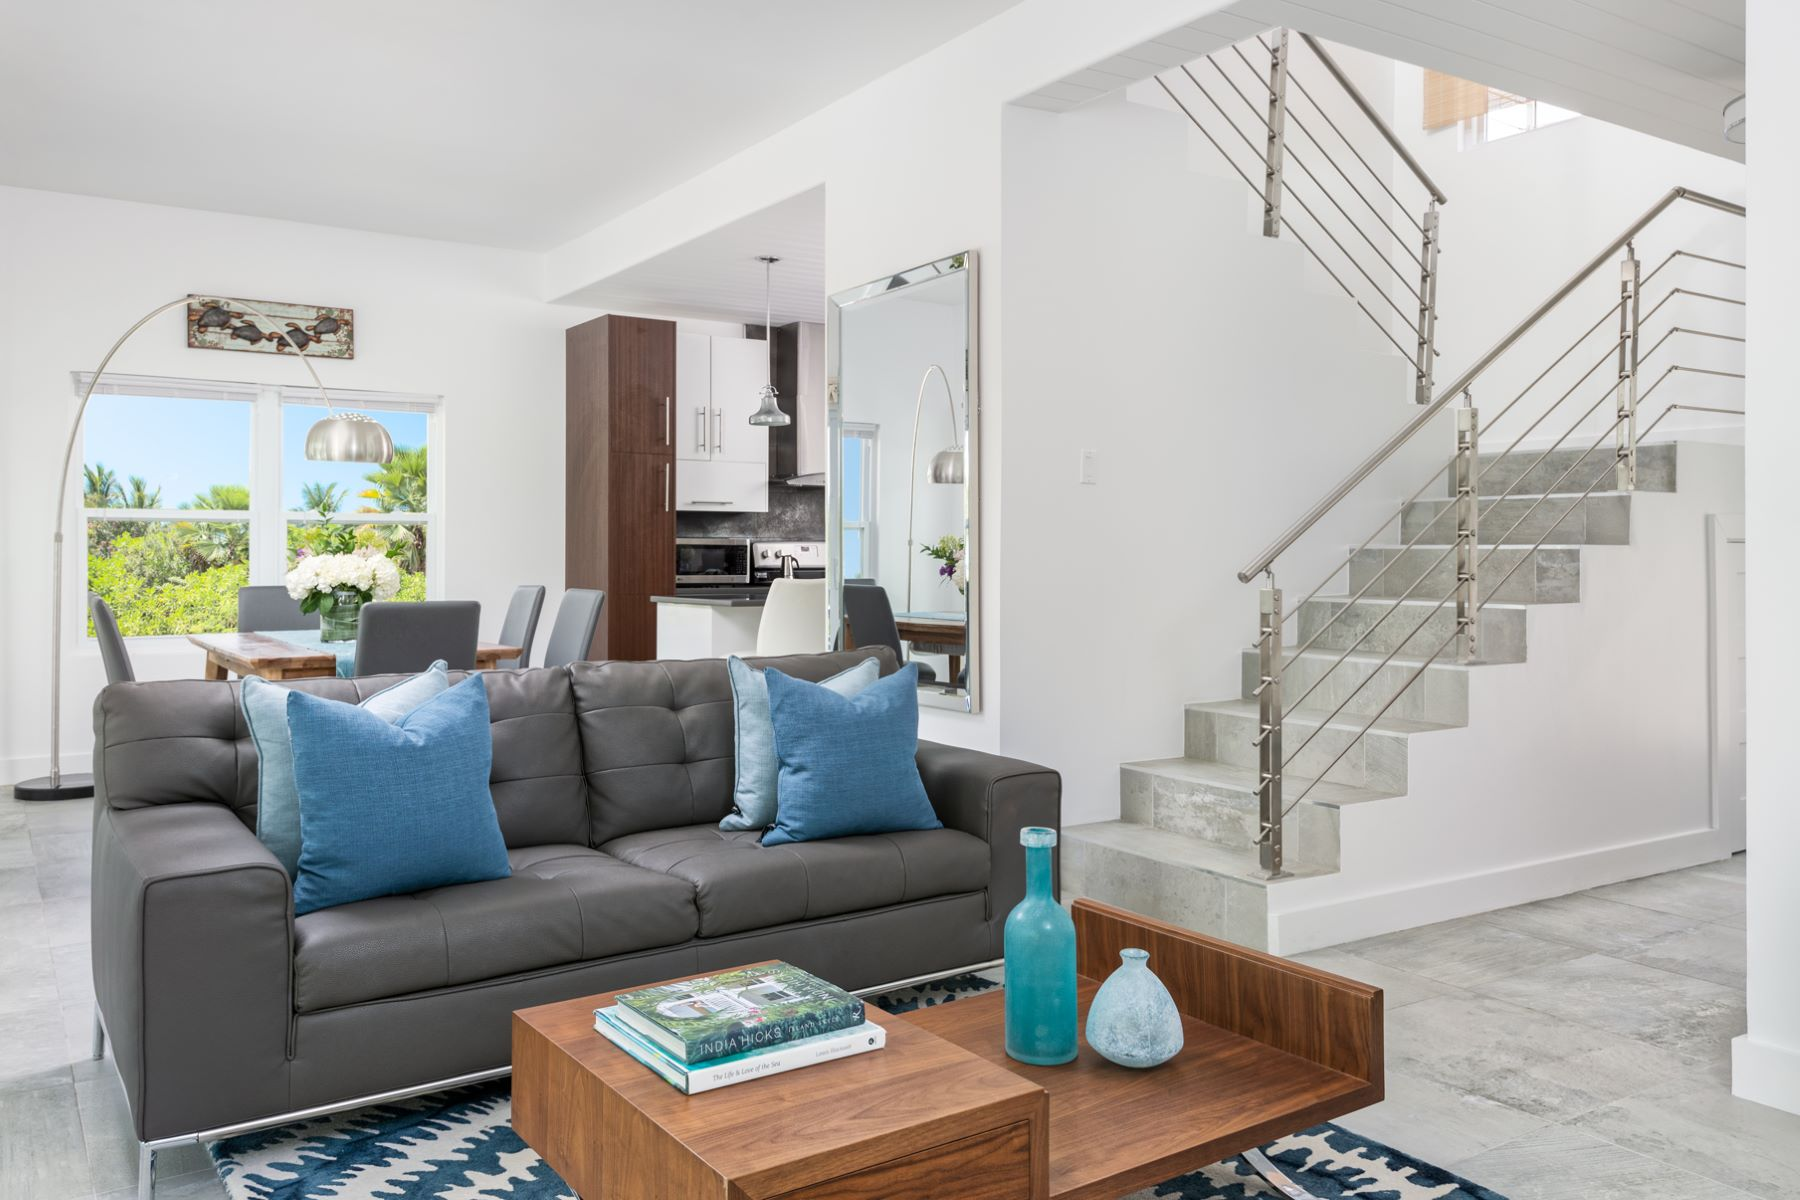 Single Family Home for Sale at Gardenia Villa Grace Bay, Providenciales Turks And Caicos Islands